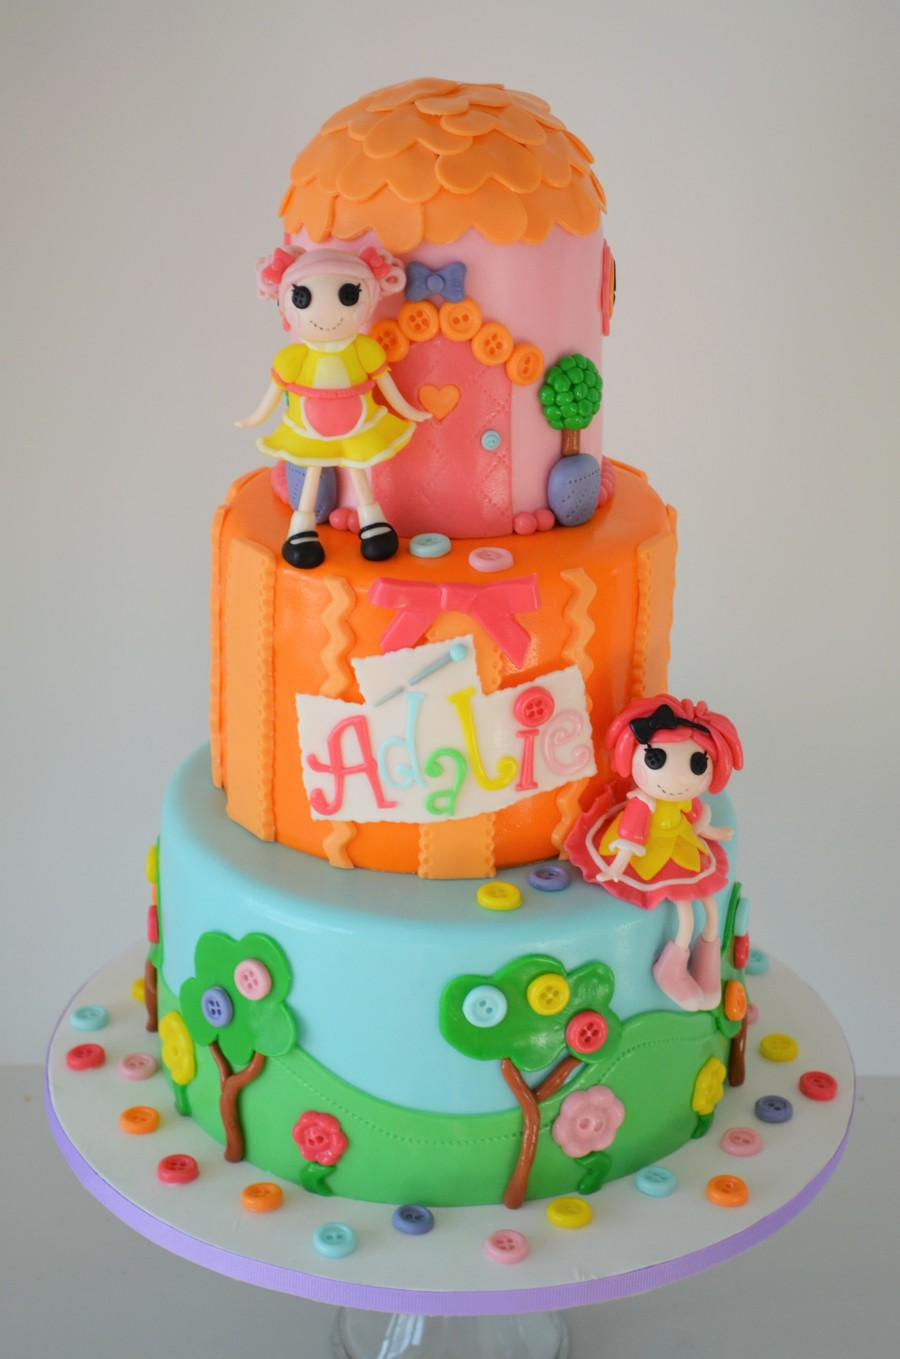 Lalaloopsy Birthday Cake on Cake Central